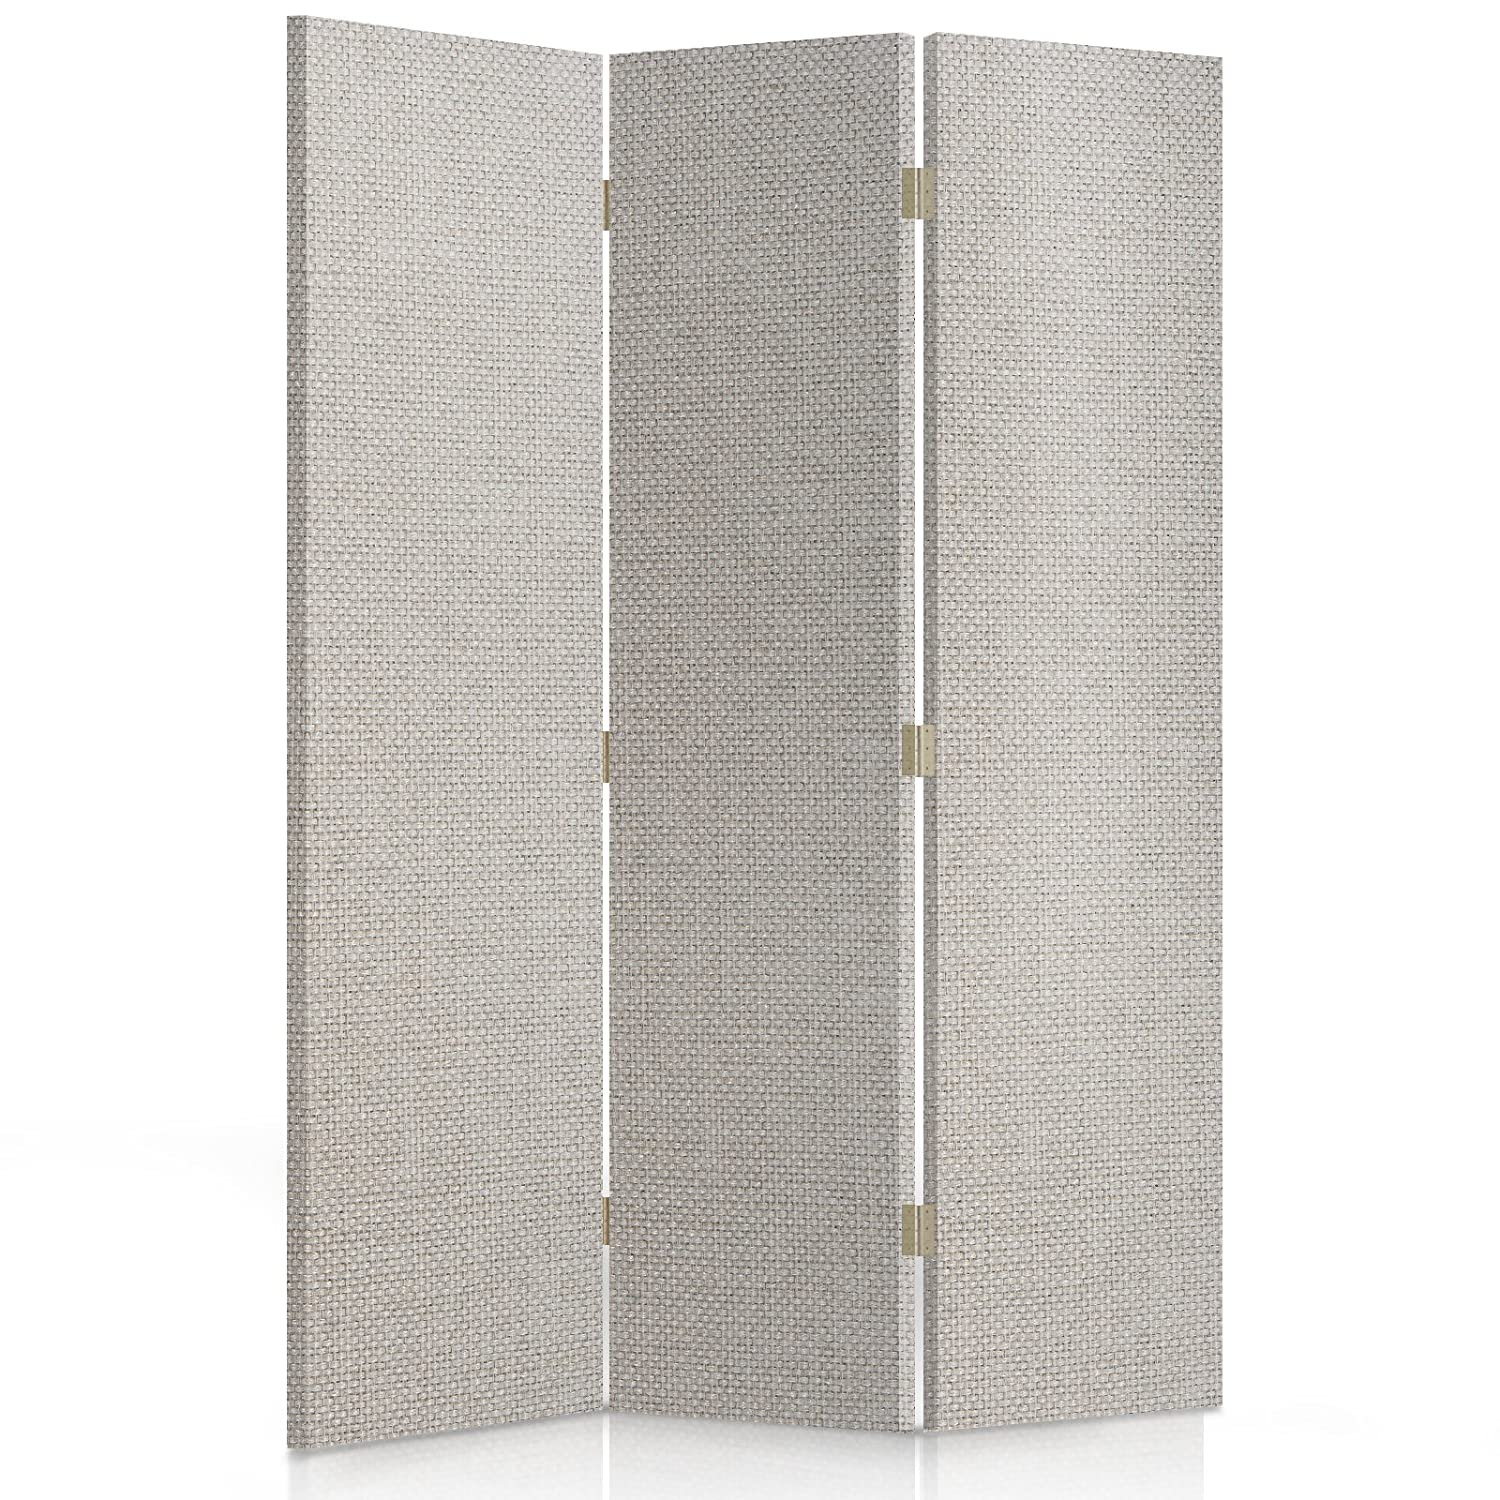 Feeby Frames, Fabric divider screen, Textile Paravent, Canvas Screen, Decorative Room Divider, Single sided, 3 panels (110x150 cm) GLAMOROUS, MODERN, BEIGE